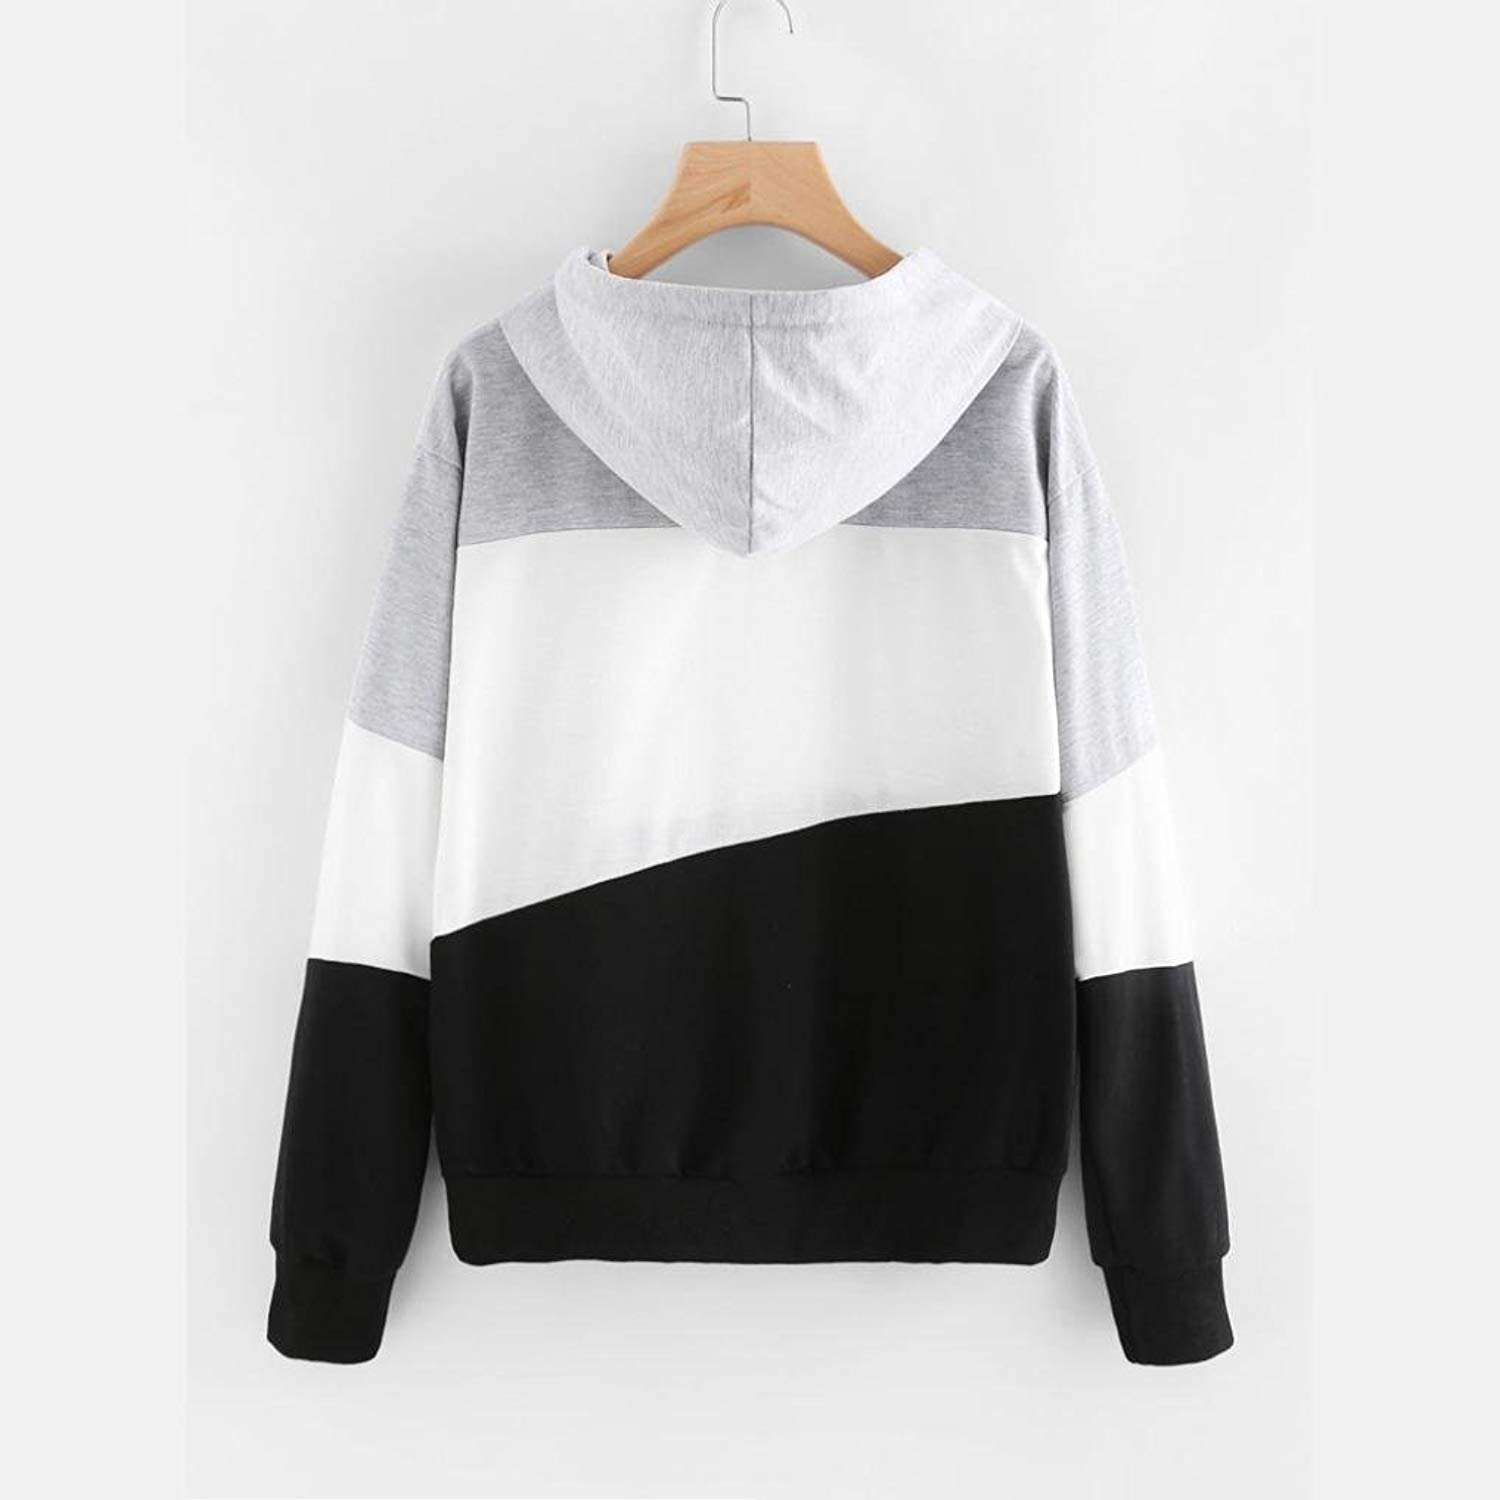 Lananas-Women Hoodies Long Sleeve Grey White Black Color Patchwork Sweatshirts Tops Blouse Pullover at Amazon Womens Clothing store: